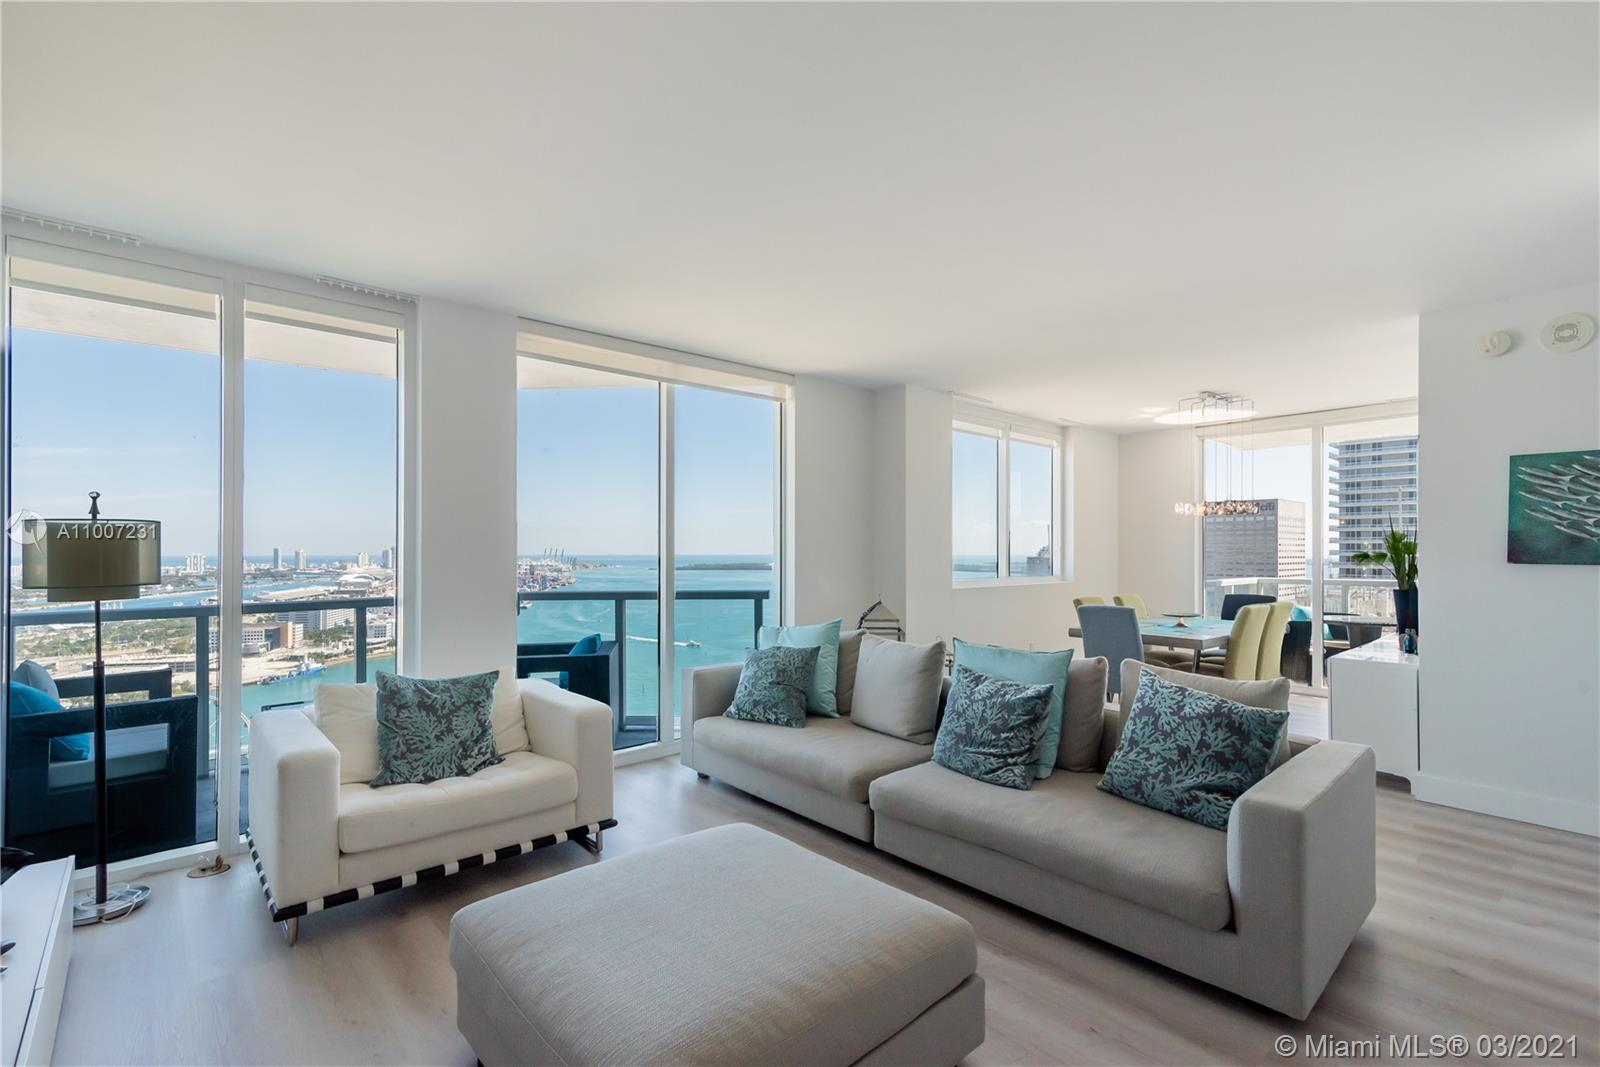 Modern 2/2 corner unit located in the heart of Miami features stunning panoramic views of the Downtown Miami skyline and bay. Unit has been fully updated with fresh paint and new floors; high ceilings, spacious kitchen w/ S?S appliances. Luxury amenities include a bar, clubhouse, movie theater, spa and sauna, gym, pool, concierge services and 24/7 security. Walking distance to Whole Foods, Bayside Marketplace, Perez Art and Frost Museums, American Airlines Arena and Adrienne Arsht Center.